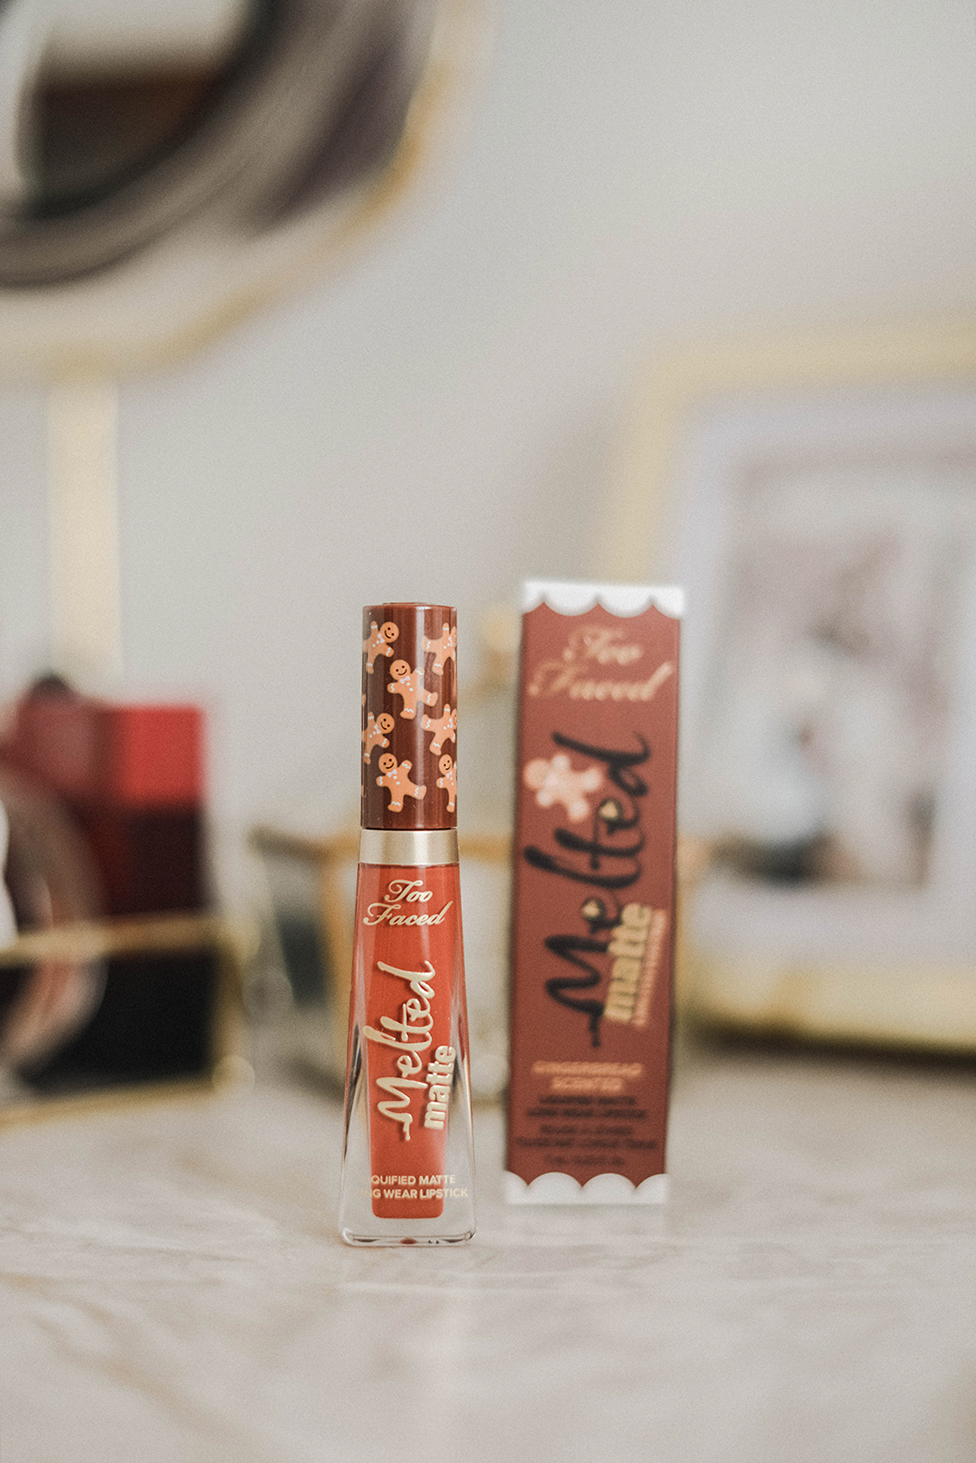 lipgloss too faced limited edition gingerbread